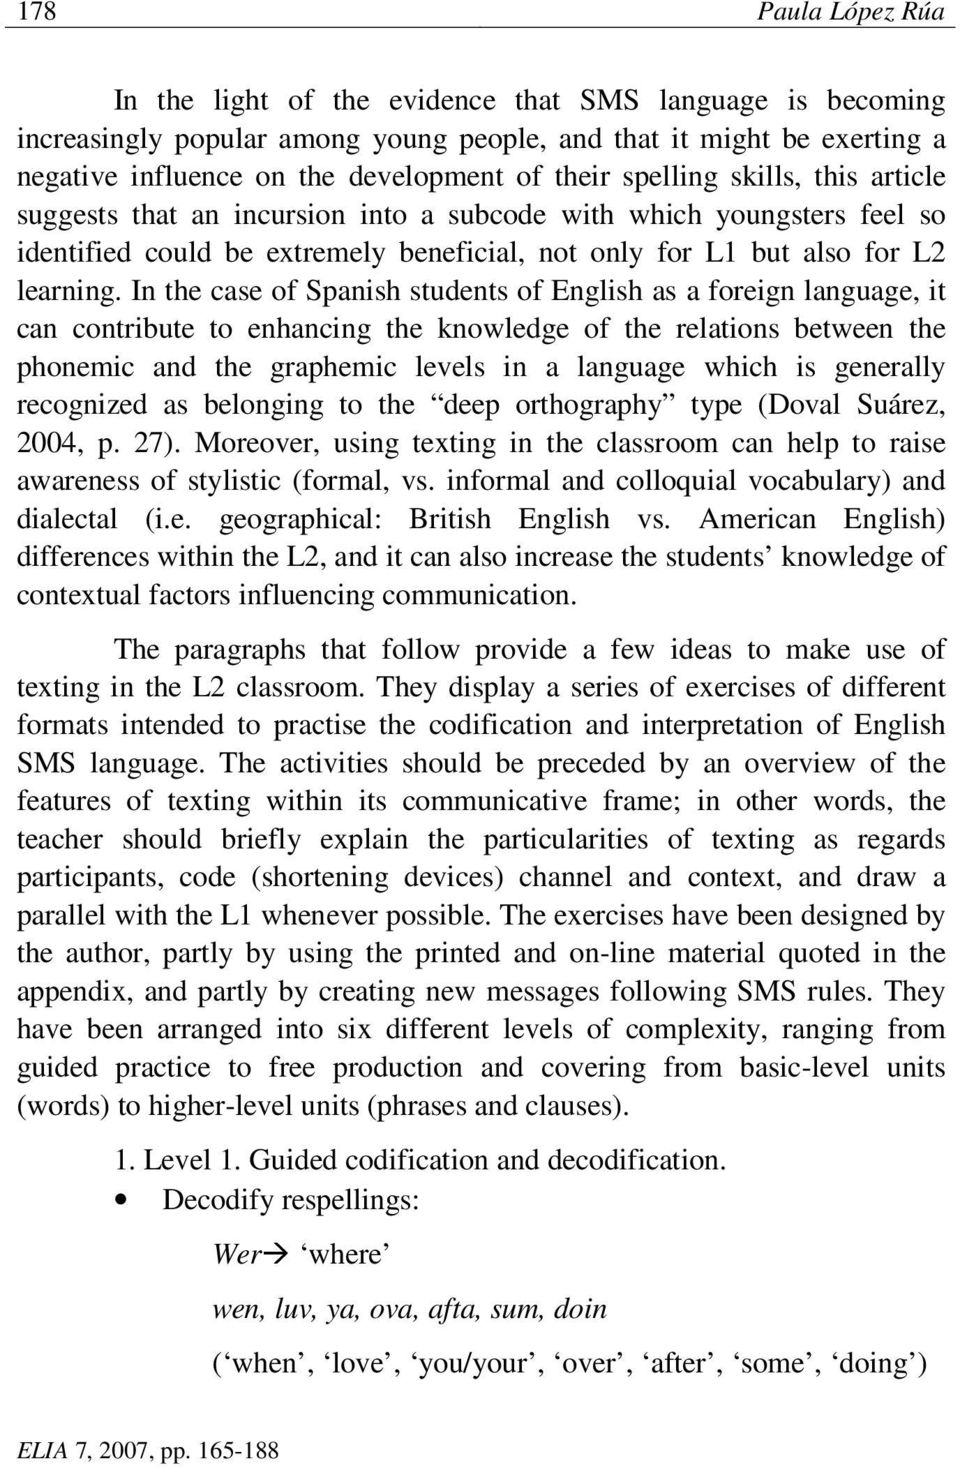 In the case of Spanish students of English as a foreign language, it can contribute to enhancing the knowledge of the relations between the phonemic and the graphemic levels in a language which is